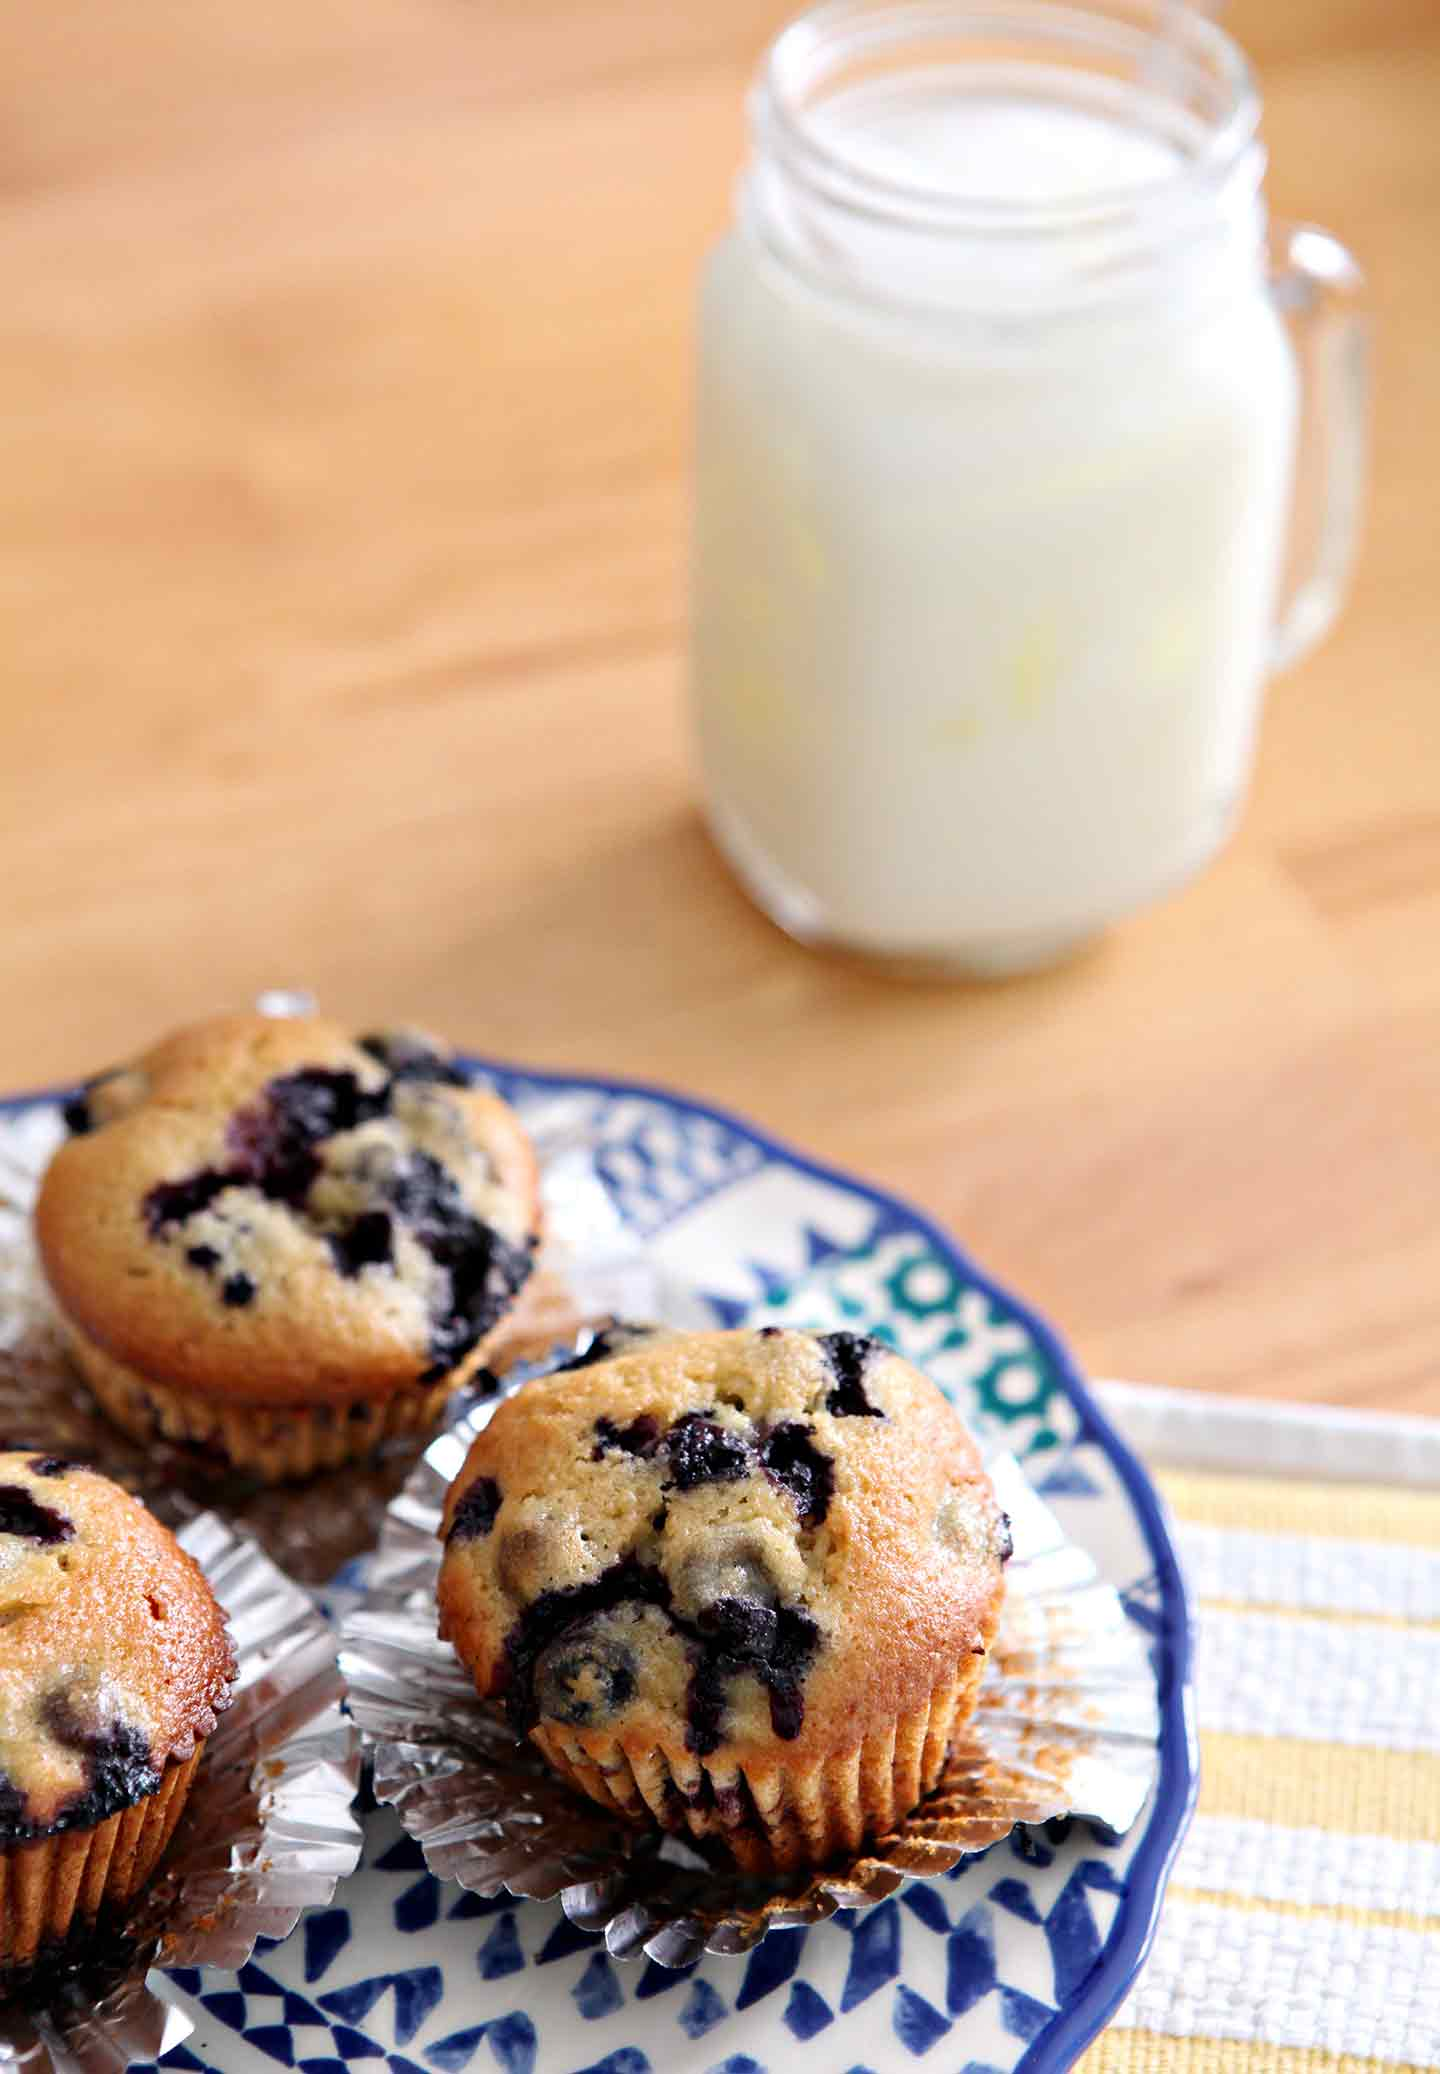 Three Vegan Blueberry Muffins, set on a blue patterned plate on a golden tabletop with a glass of nut milk before eating.